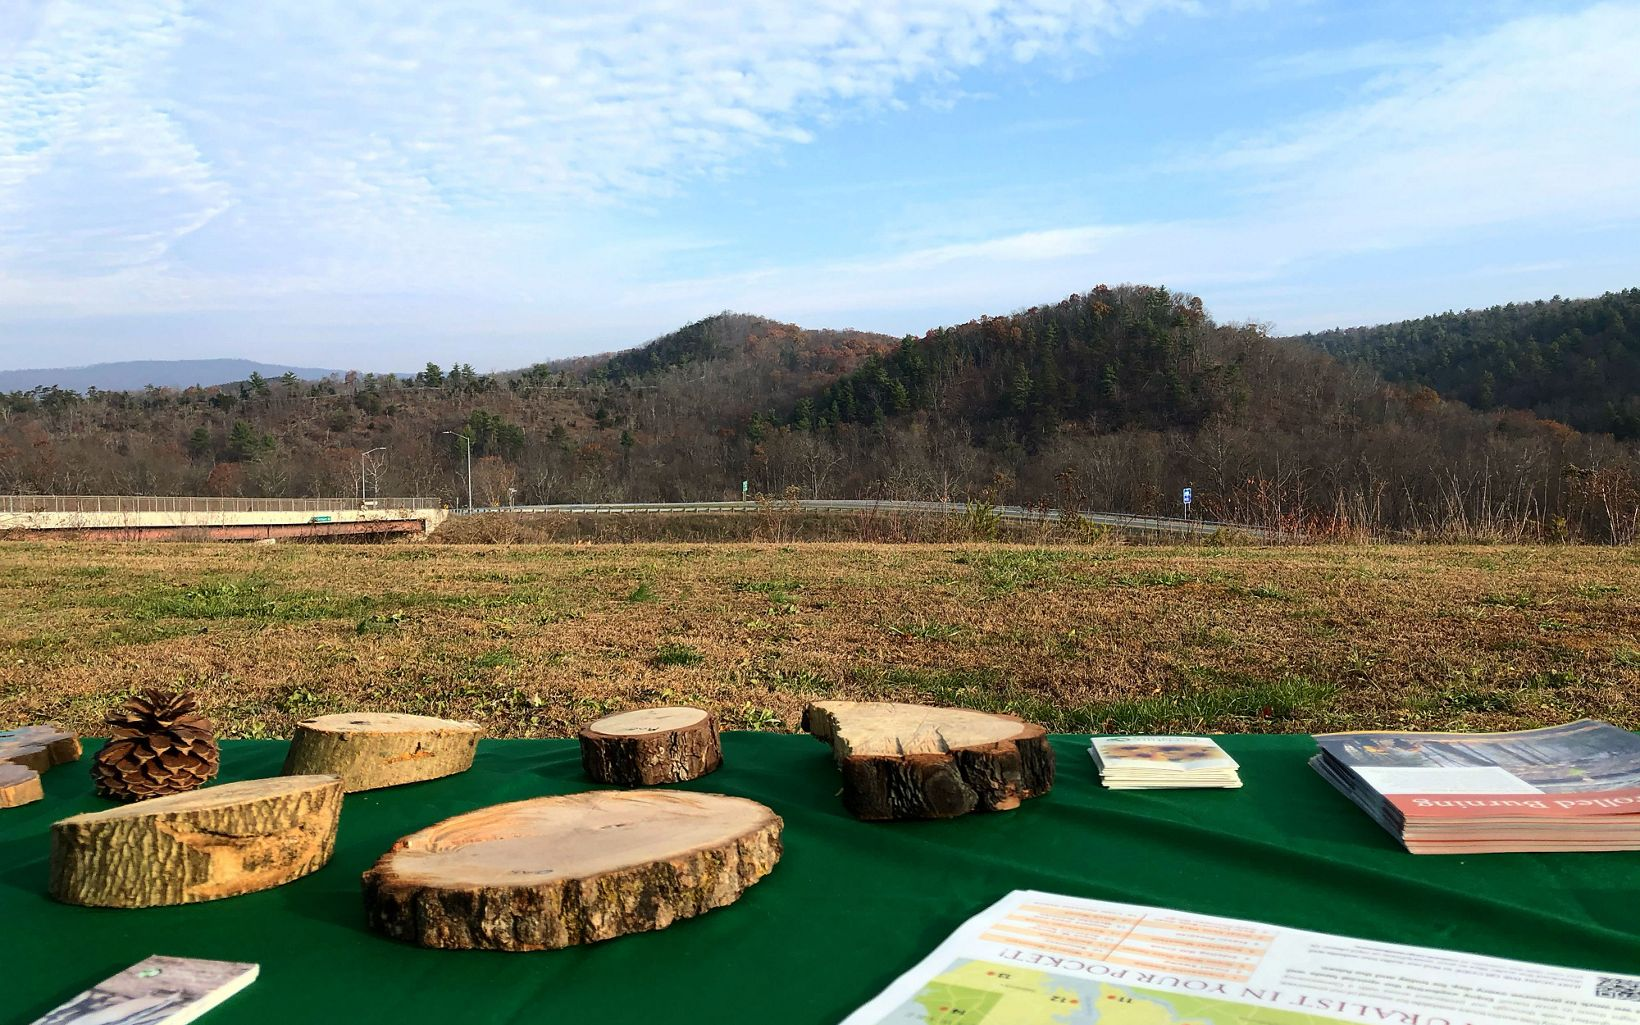 Tree cookies were on hand at TNC's public viewing station for visitors to learn more about fire's role on the landscape.